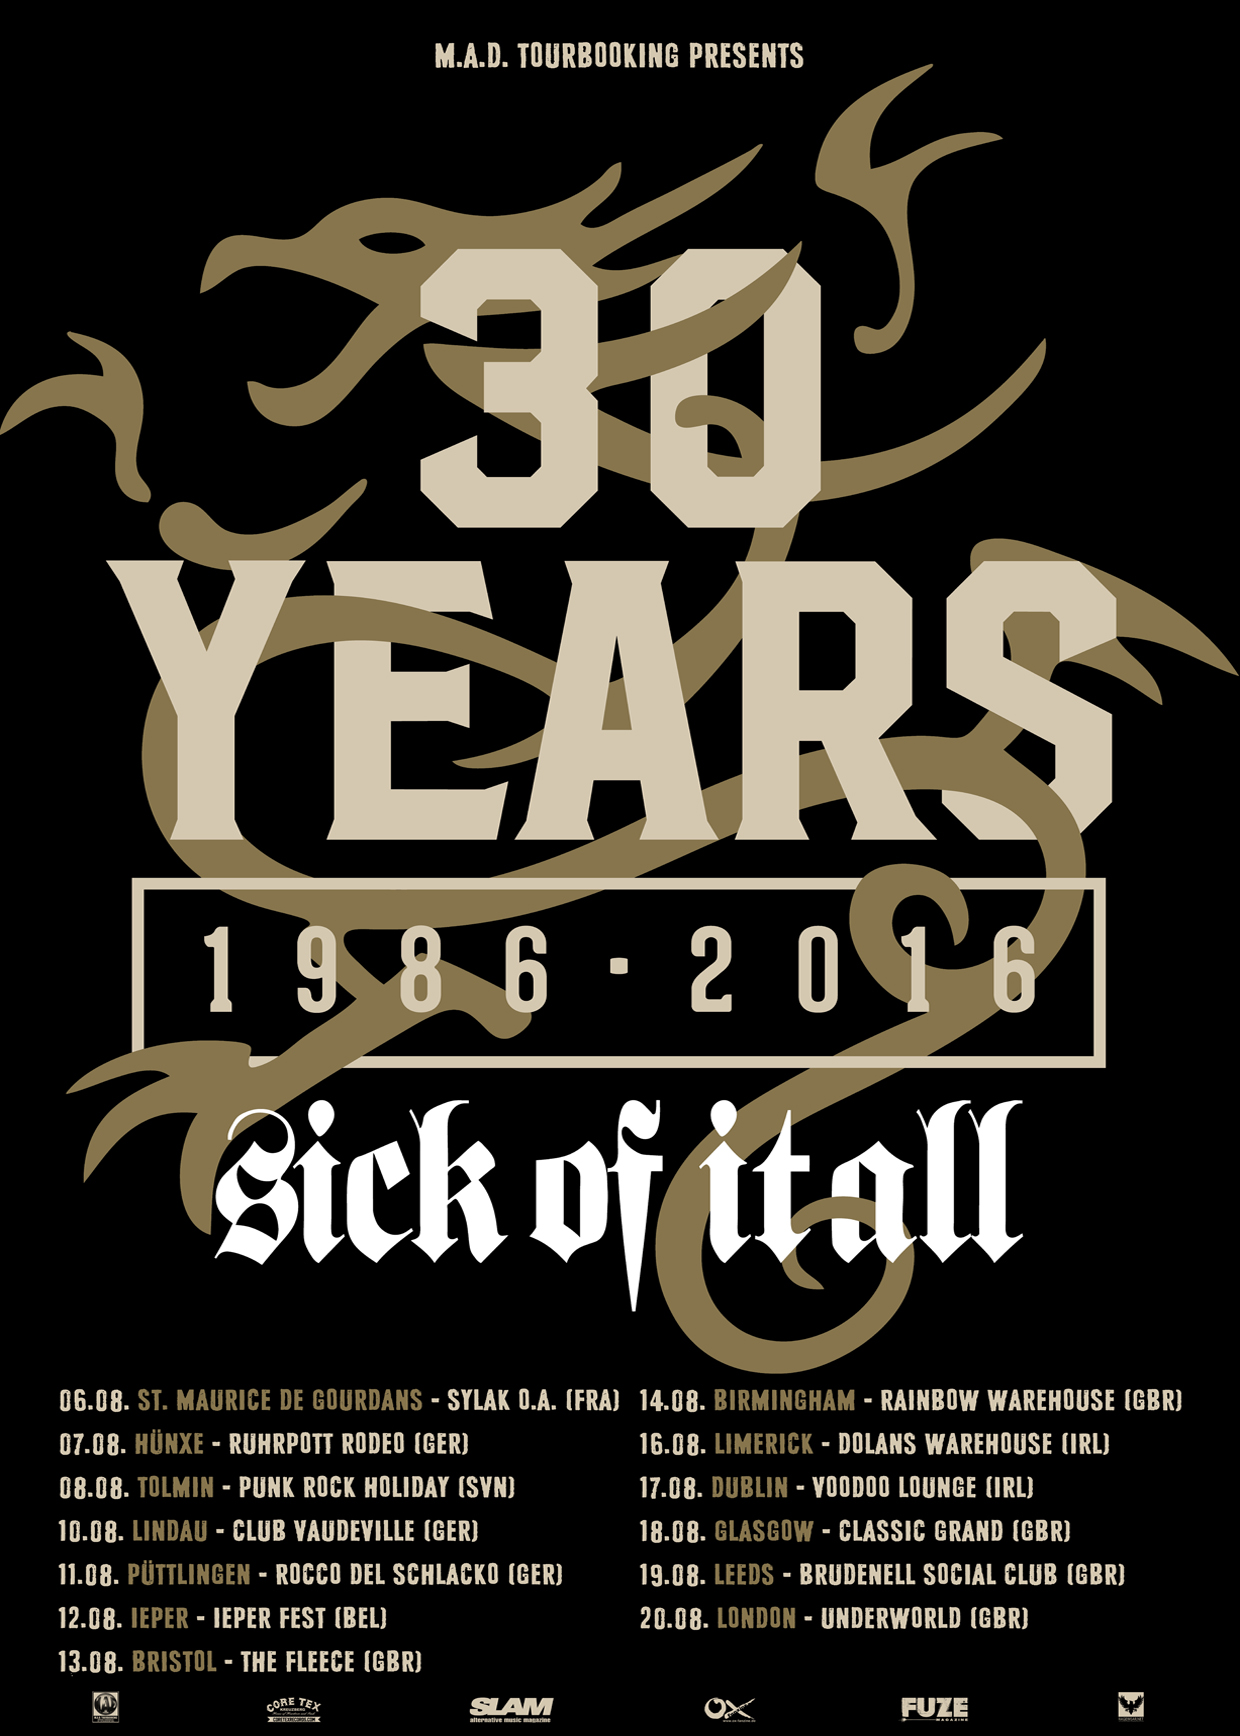 Kicking off another European run for the 30th Anniversary